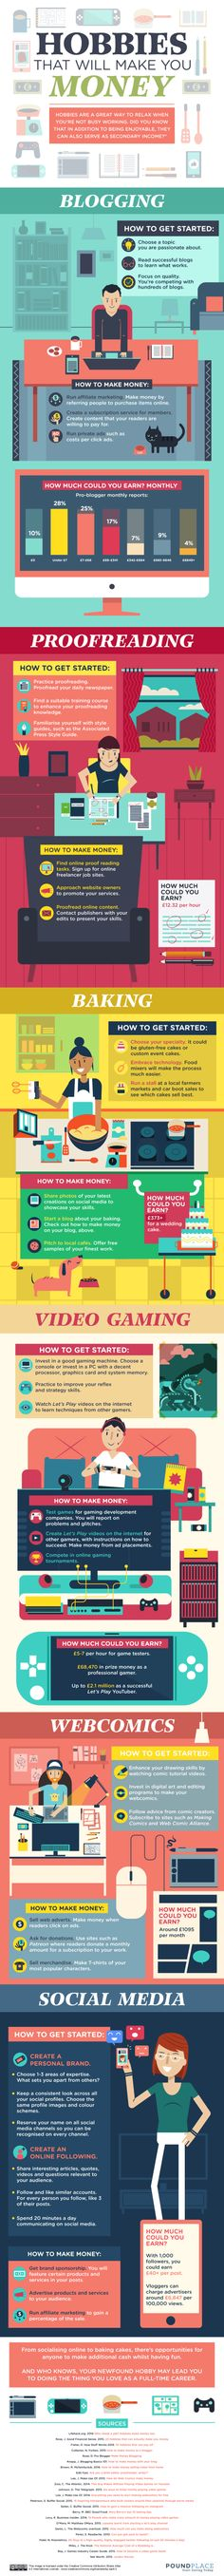 hobbies that can earn you extra money on the side Turns out your video game addiction could earn you some extra cash.Turns out your video game addiction could earn you some extra cash. Earn Money From Internet, Earn Money Online, Online Income, Online Survey, Video Game Addiction, Hobbies To Try, Data Charts, Marca Personal, Financial Planning